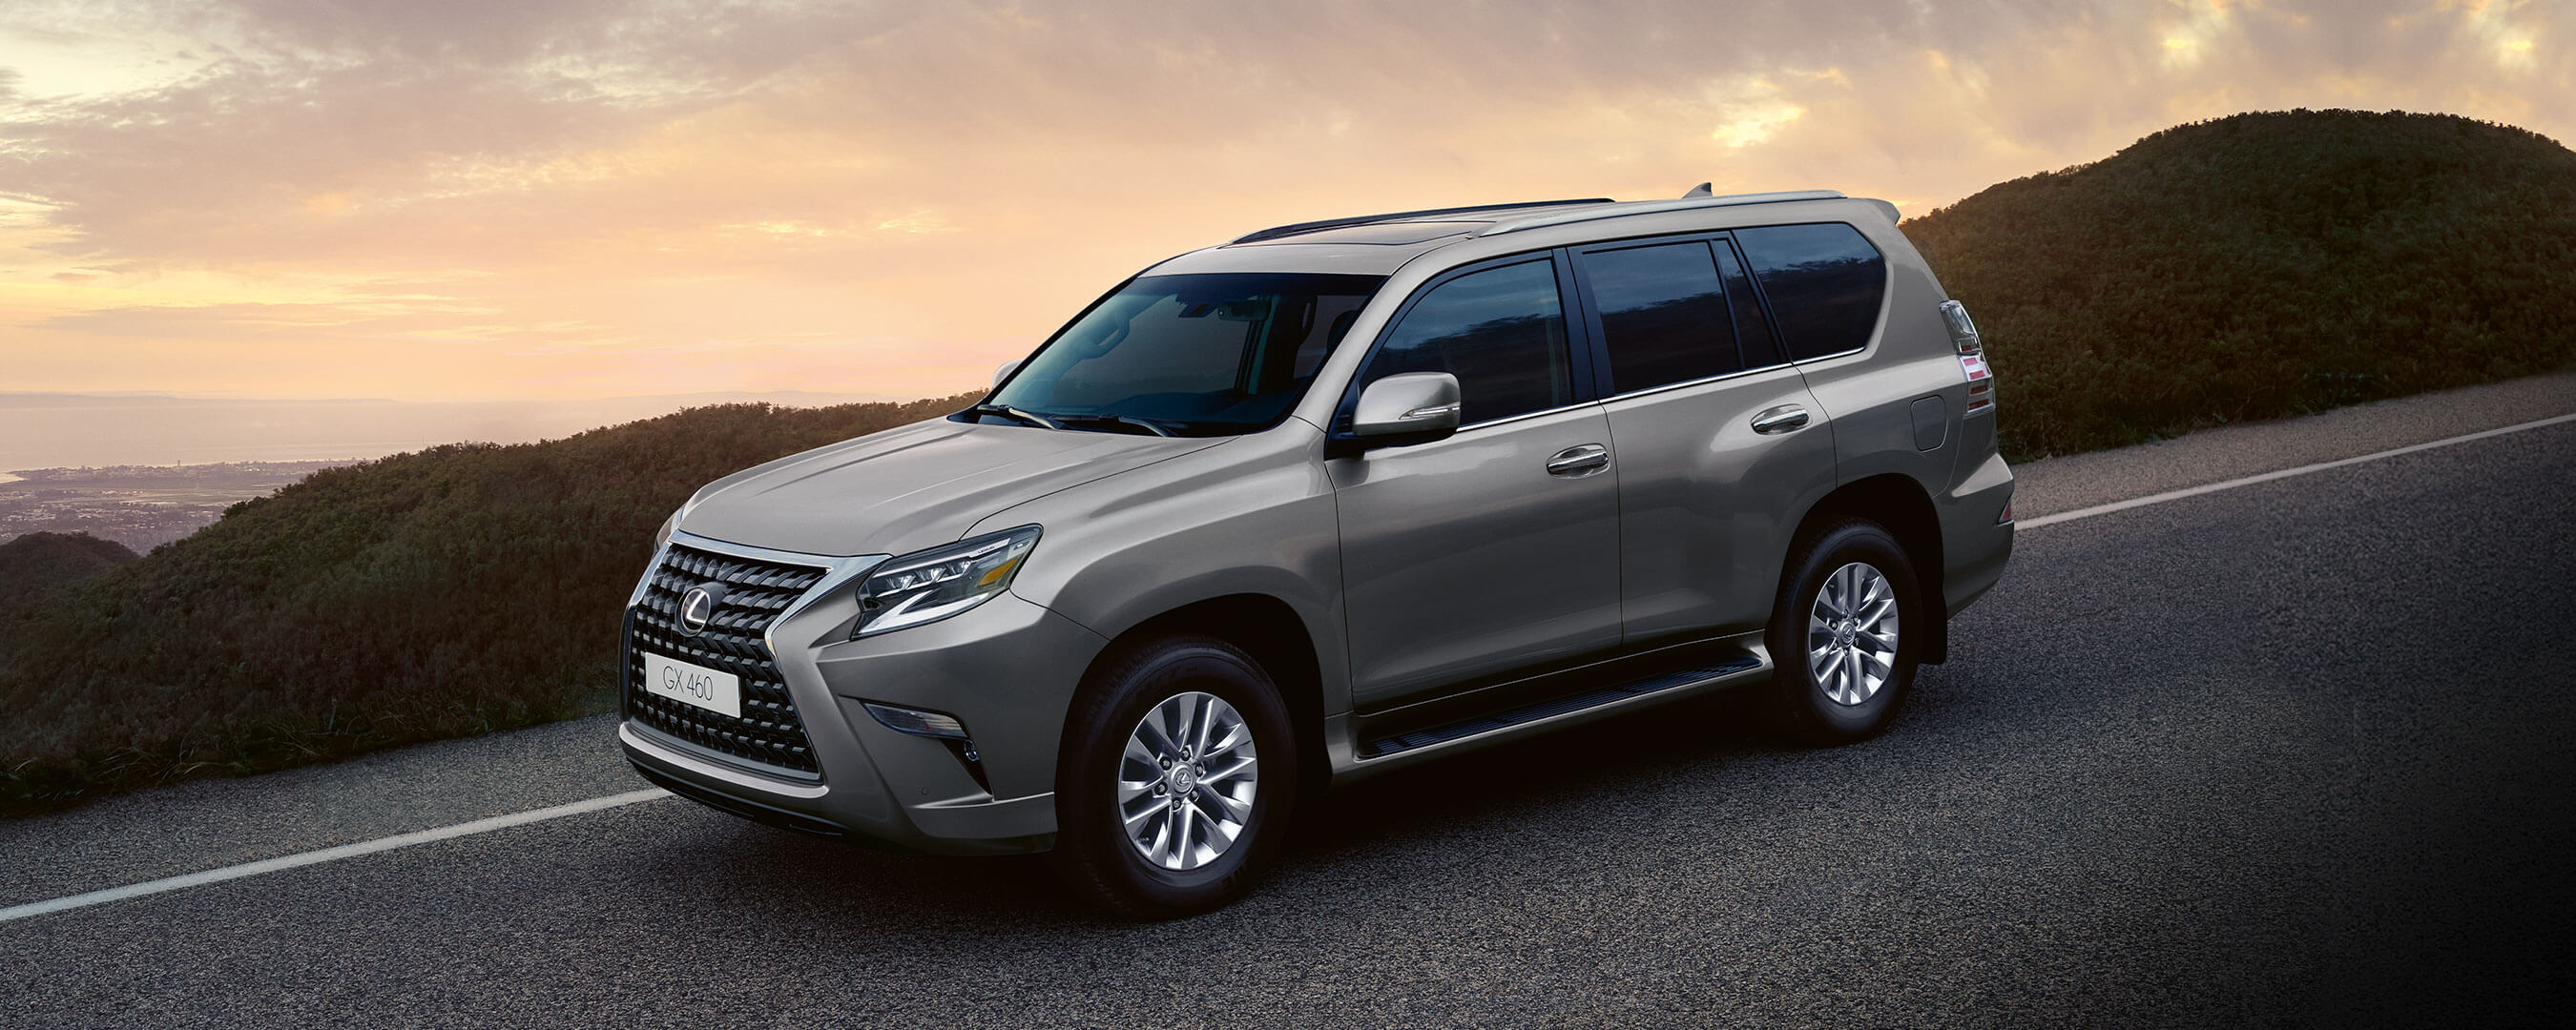 2019 lexus gx experience exterior front